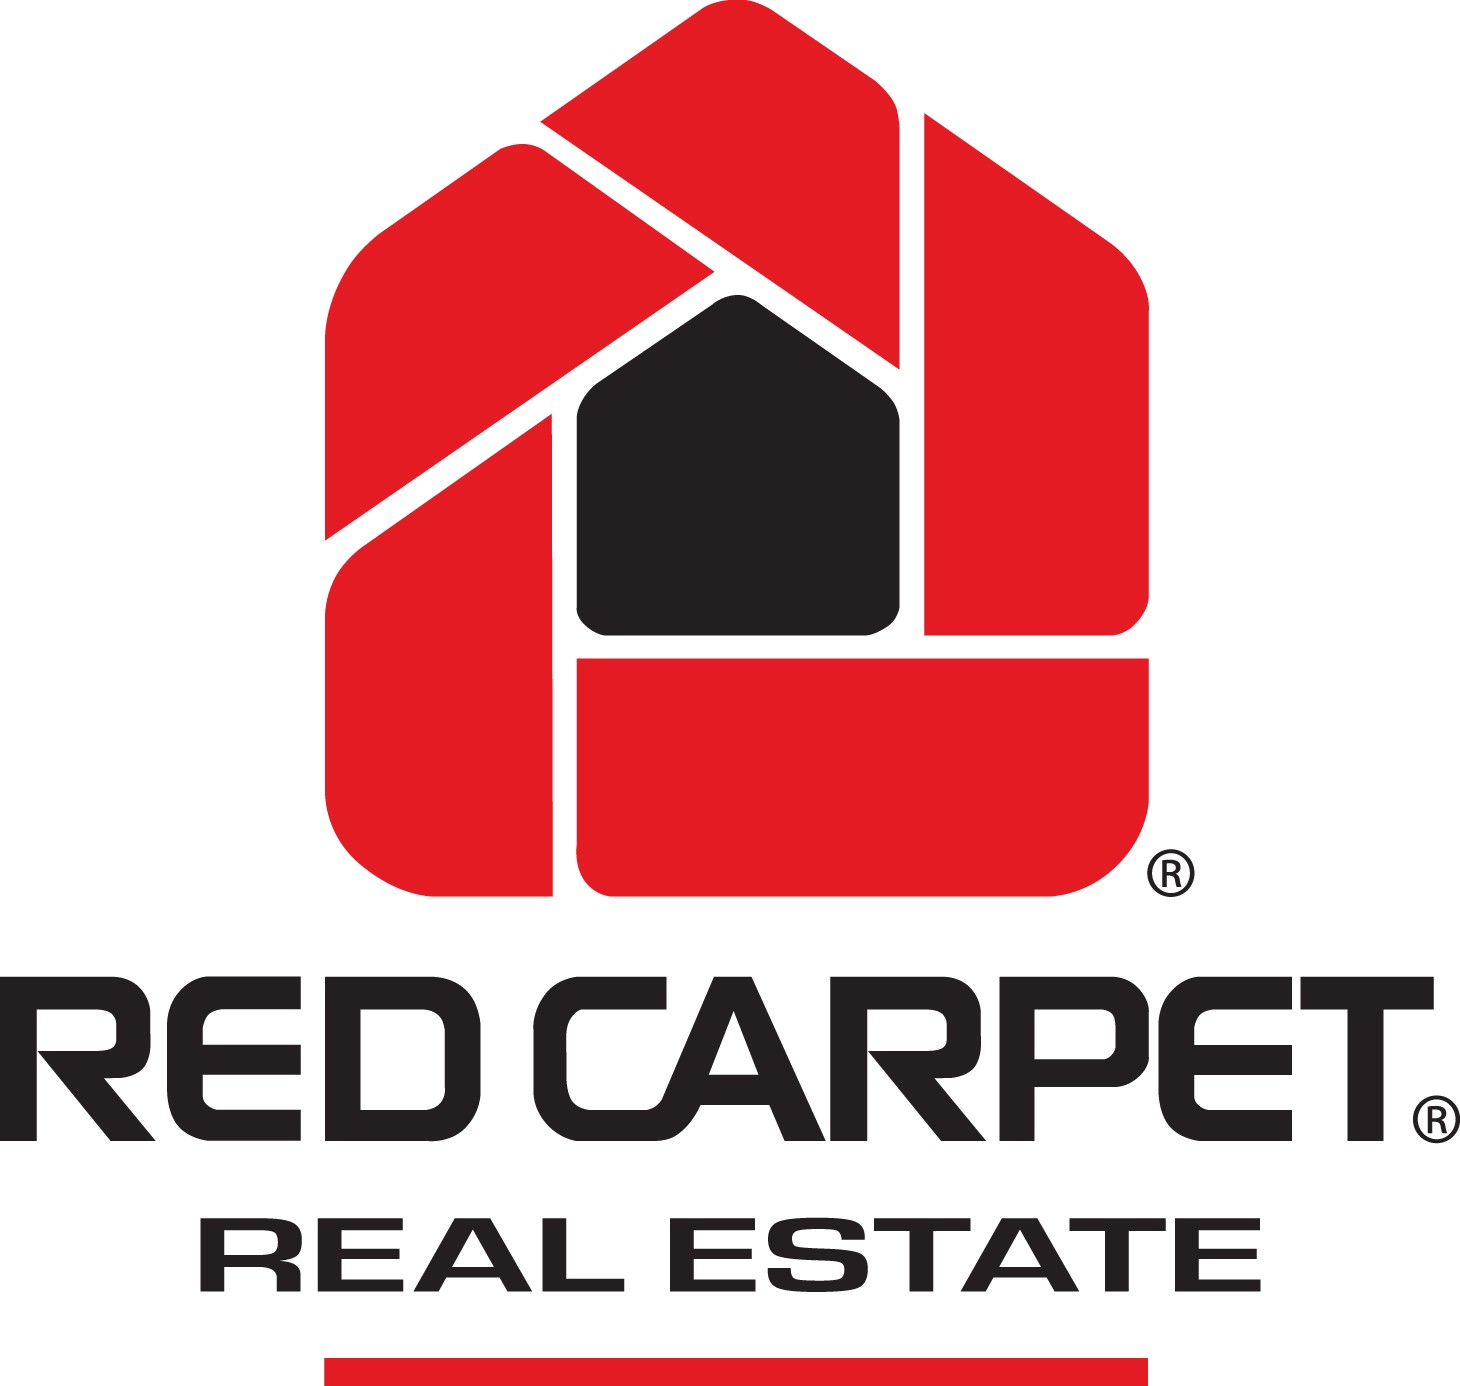 Real Estate Agents Page 1 Red Carpet